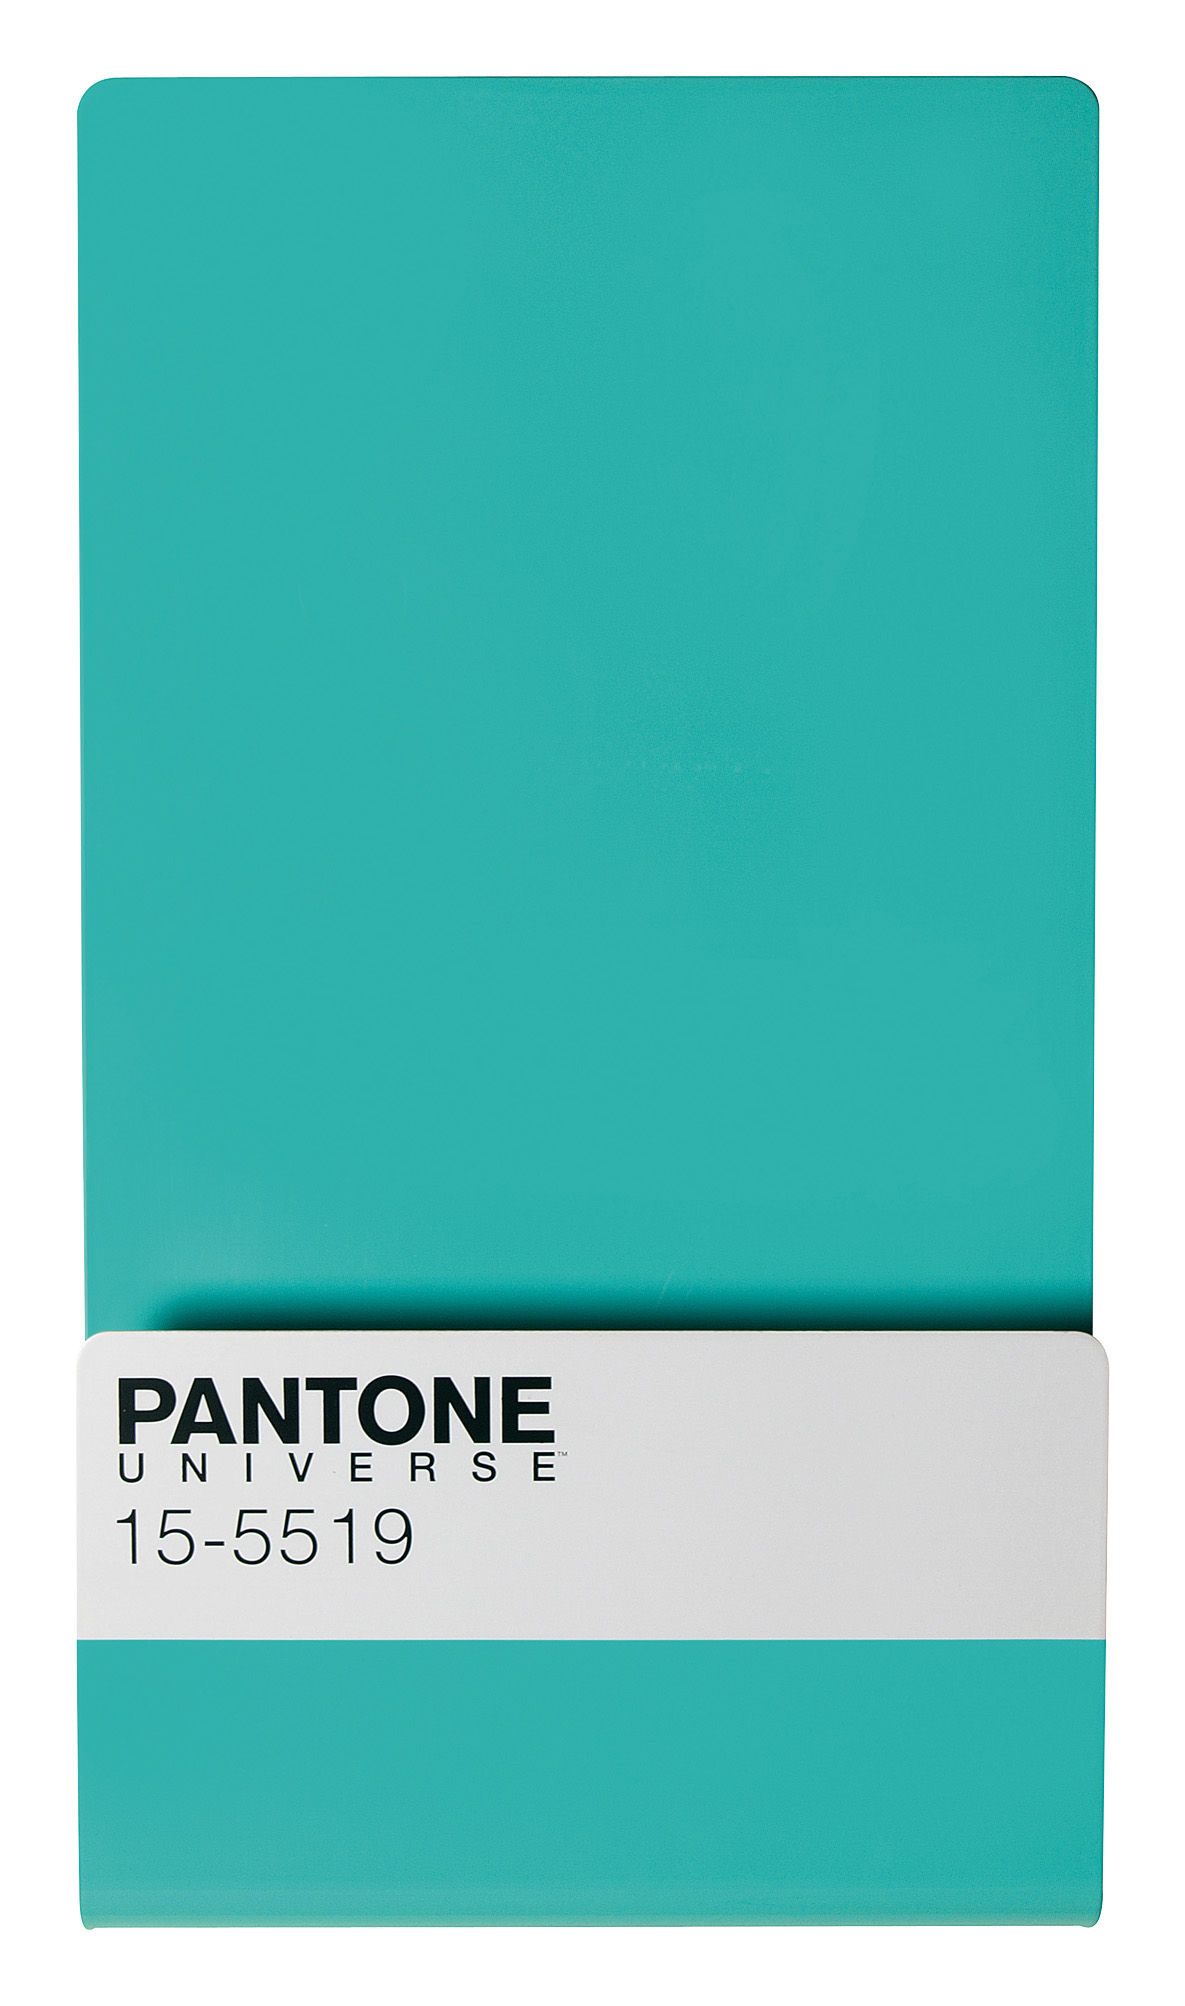 pantone magazine holder wall mounted magazine holder 15 5519 turquoise by seletti. Black Bedroom Furniture Sets. Home Design Ideas